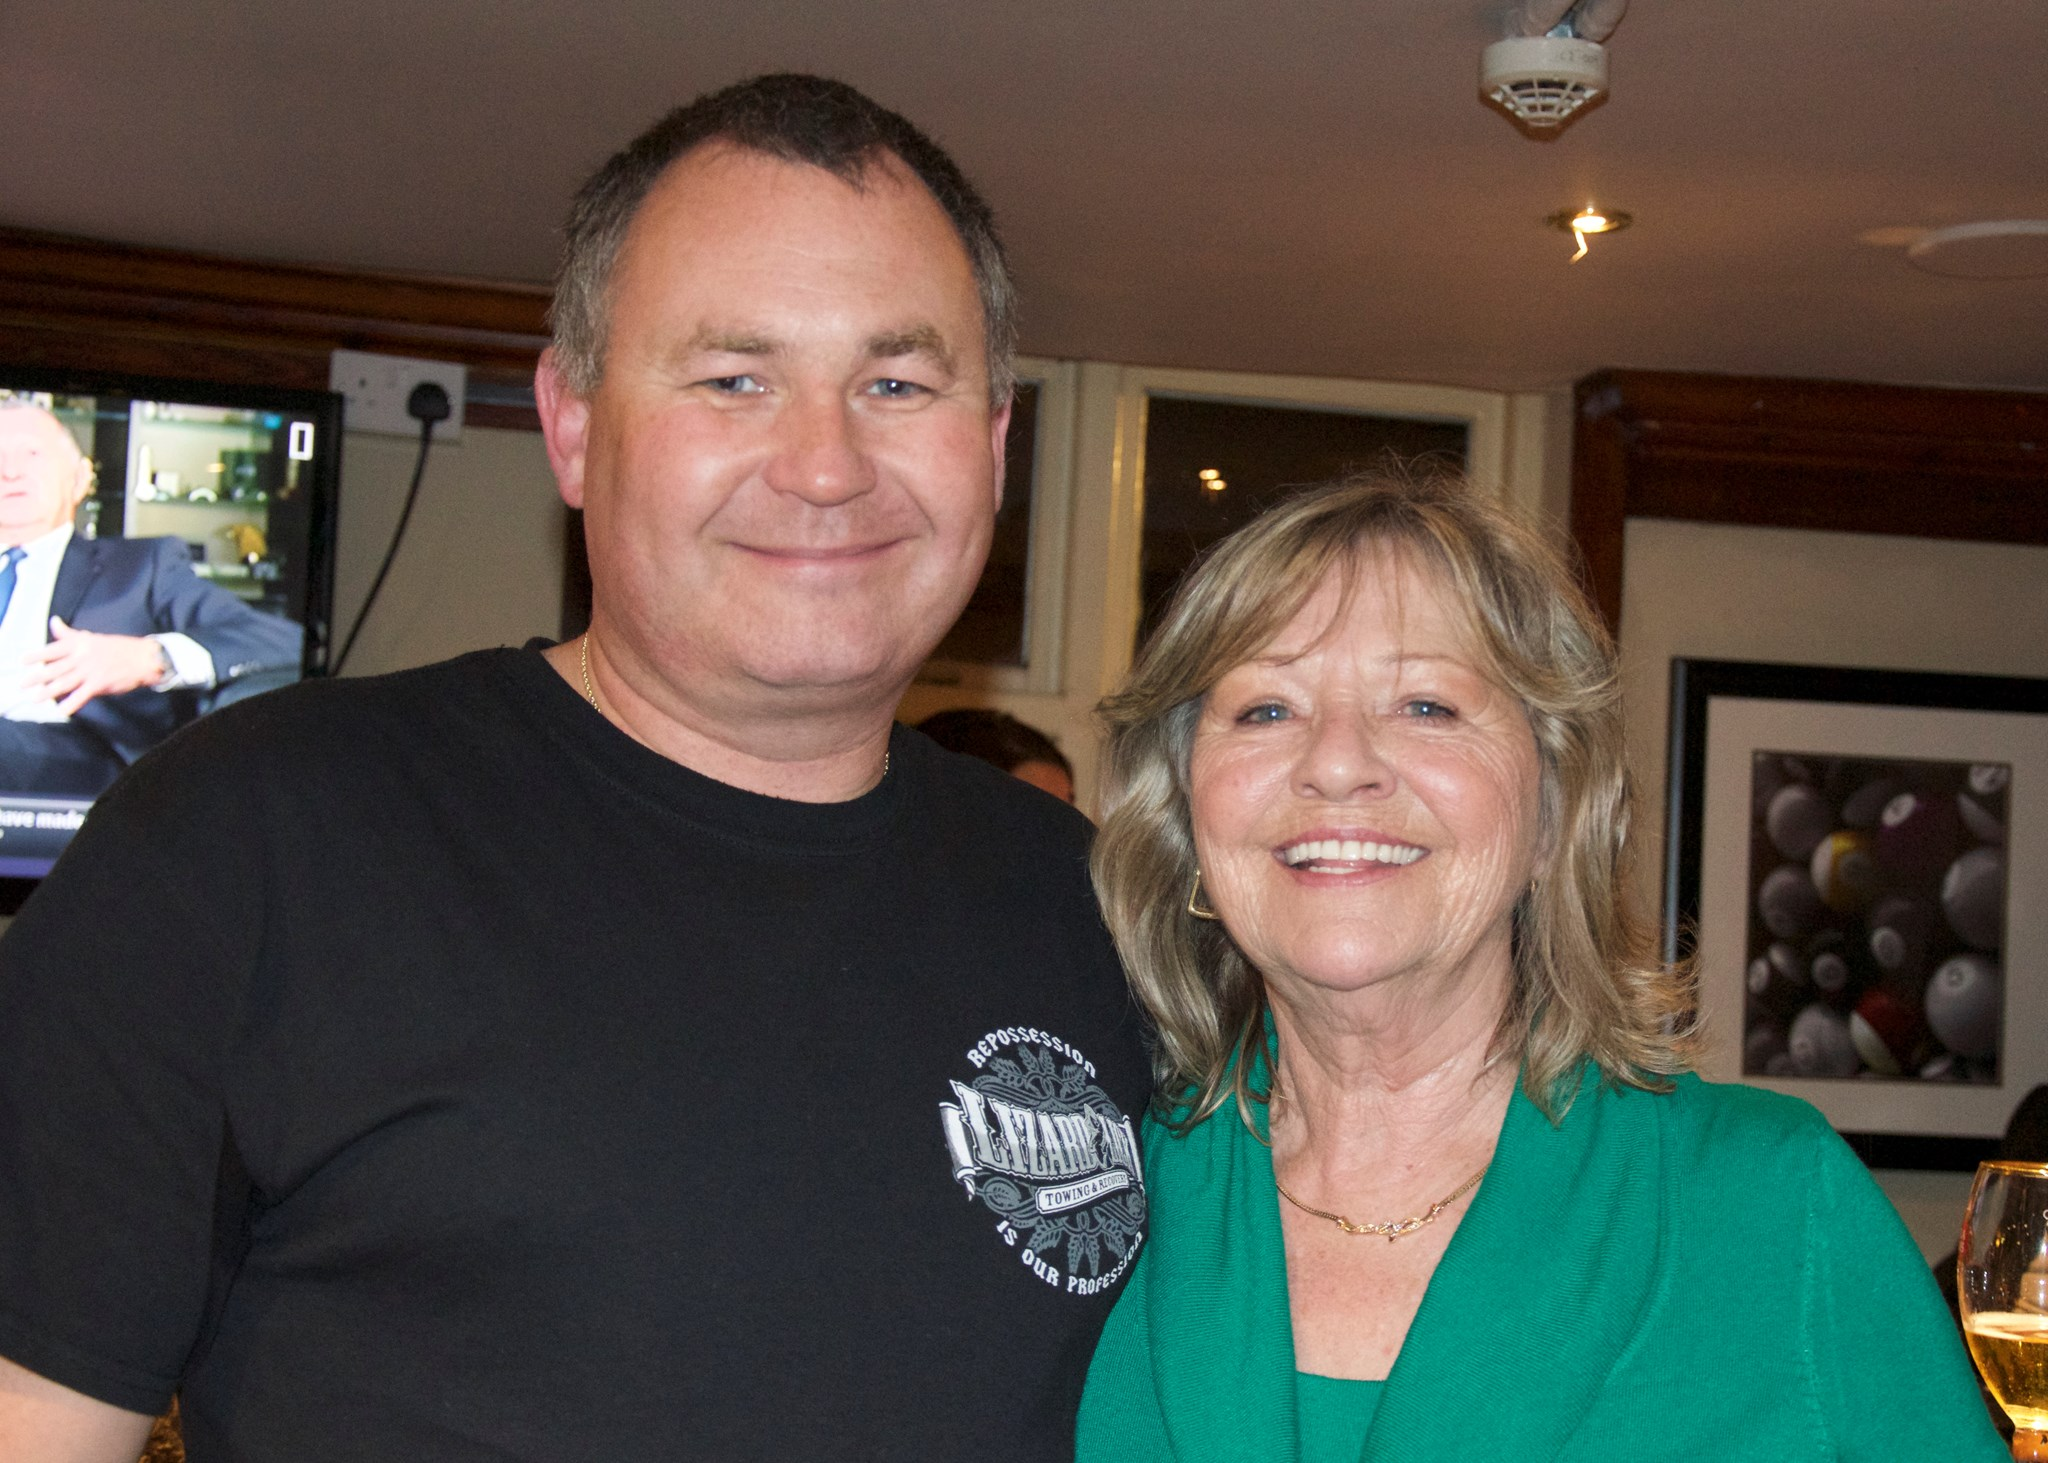 Paul and Auntie Eve. 6th Nov 2015.